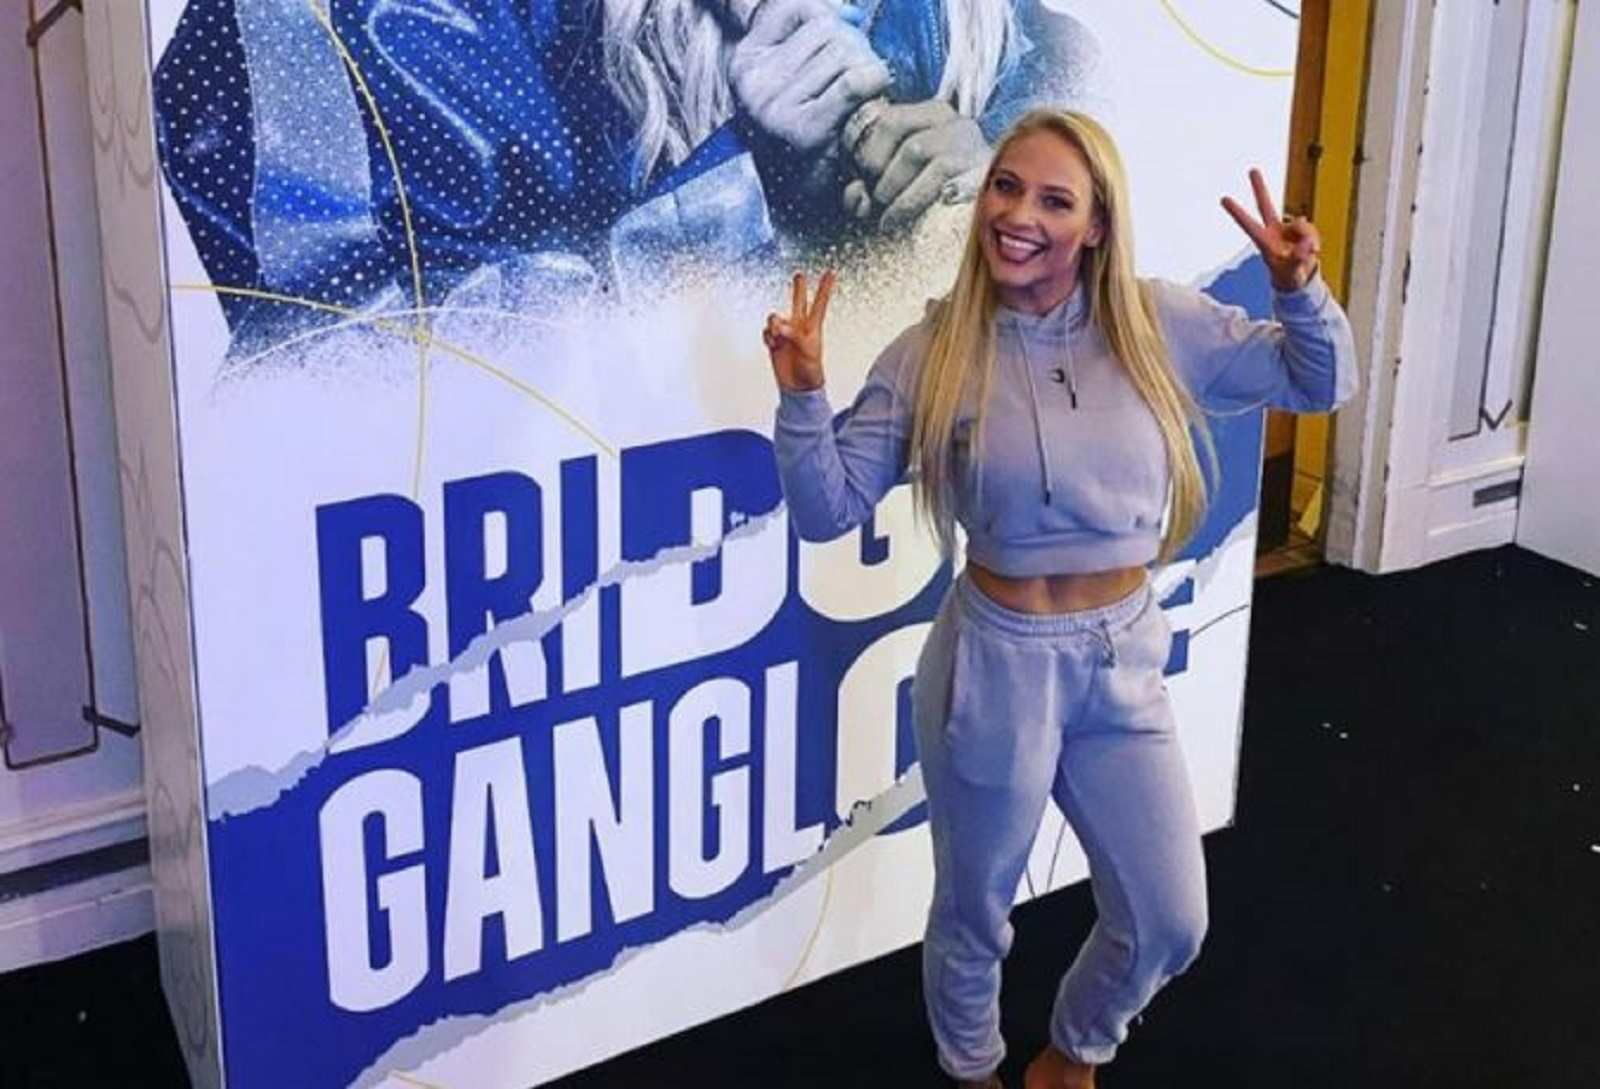 Blonde Bombshell Grabs Attention With New Weigh In Outfit